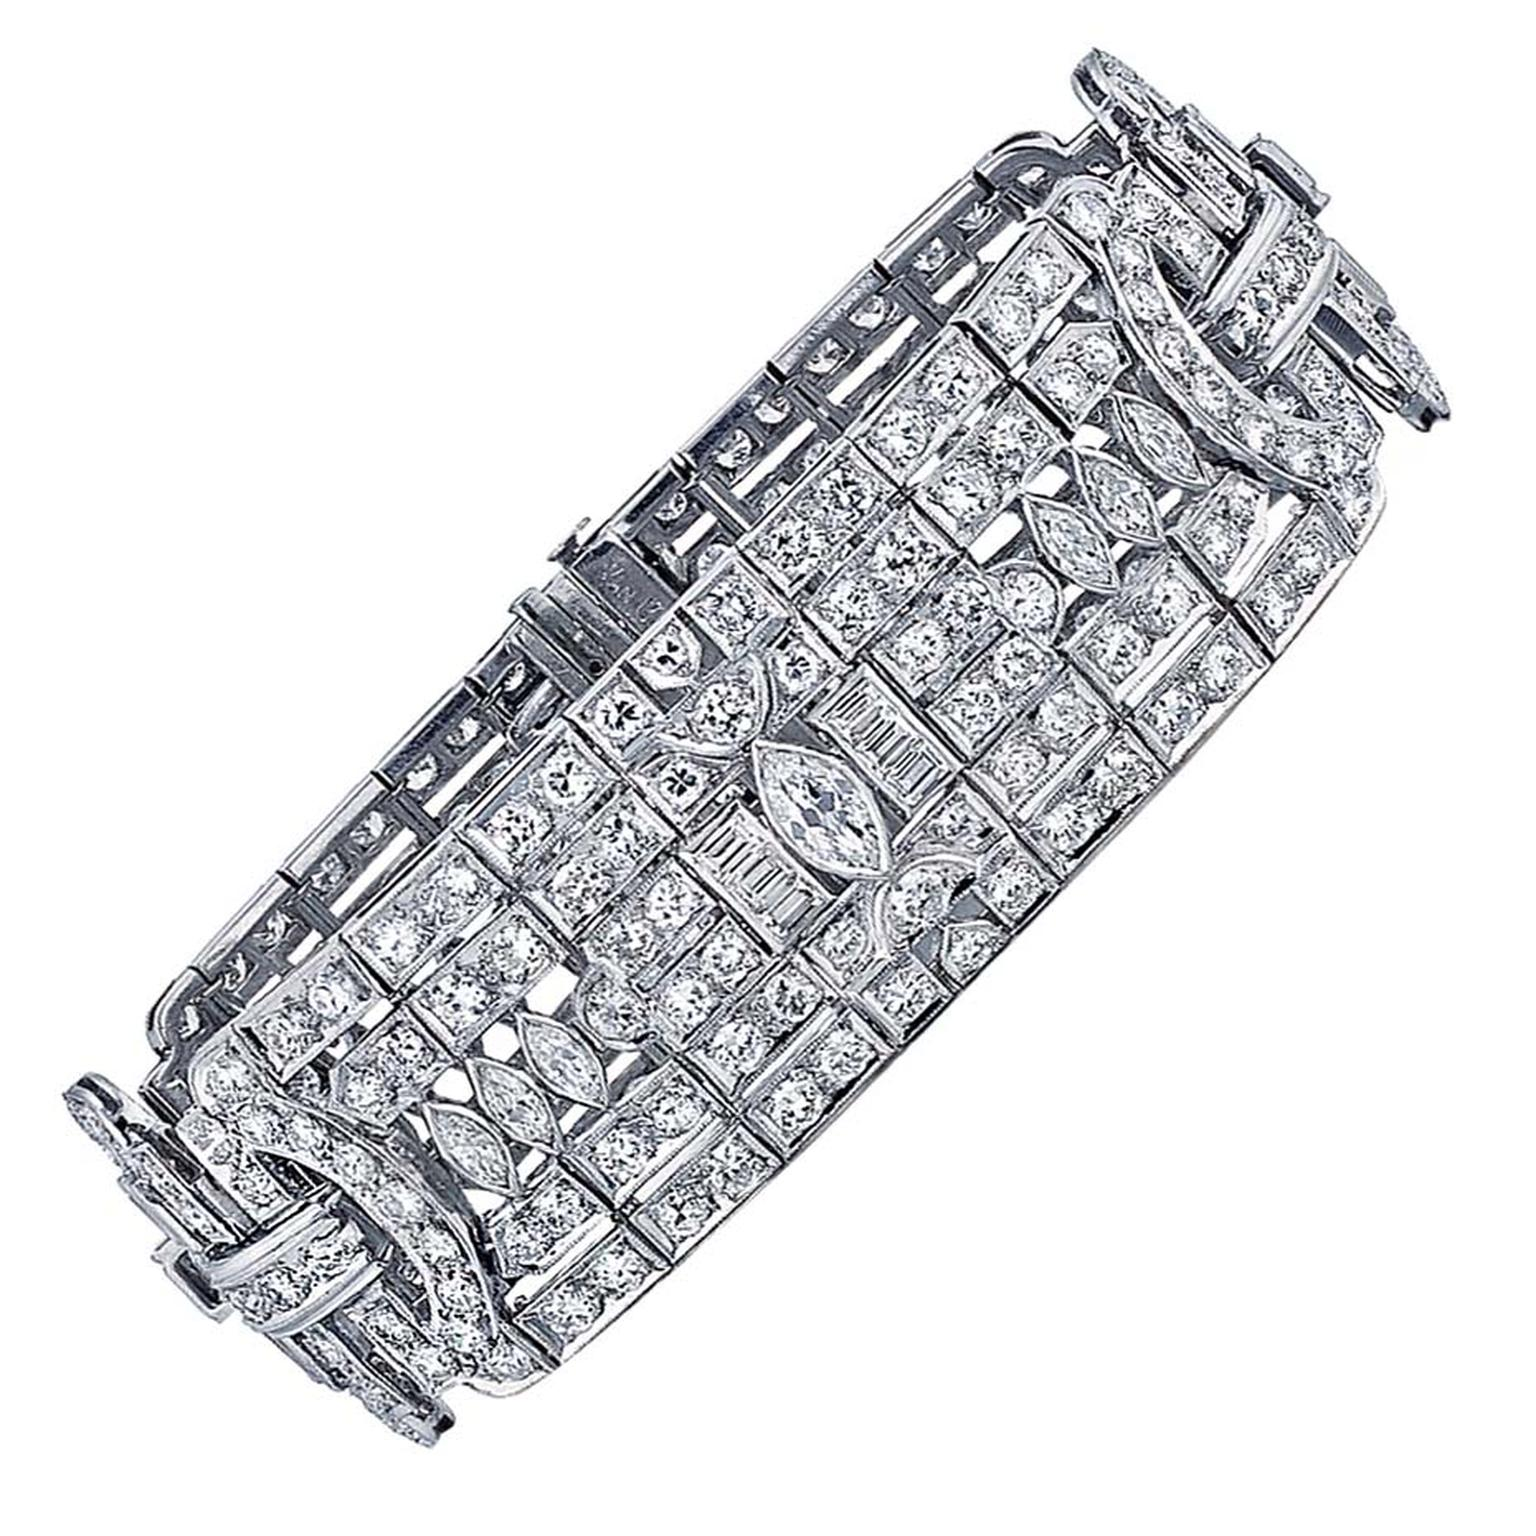 Van Cleef & Arpels 1920s Van Cleef & Arpels Diamond Platinum Bracelet ($239,000), available at 1stdibs.com. Image by: ScullyFoto.com